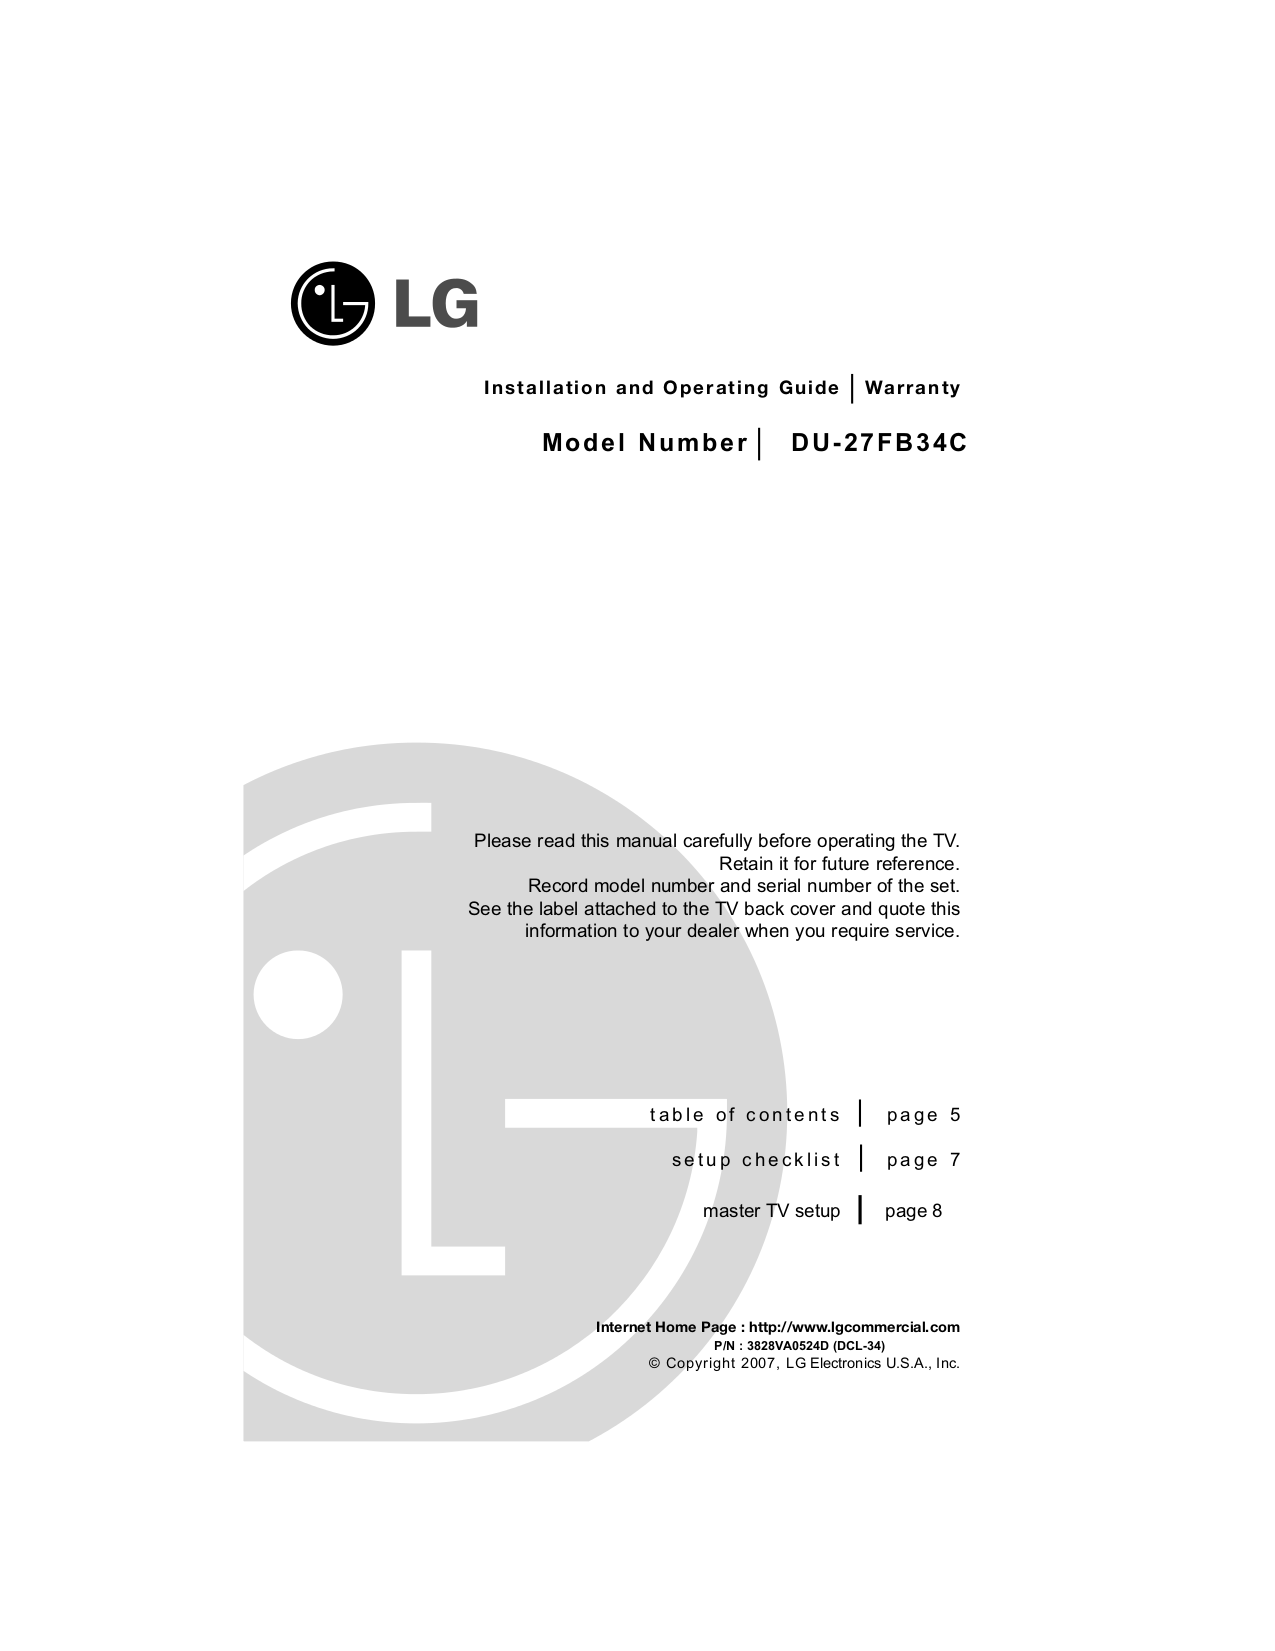 pdf for LG TV DU-27FB34C manual